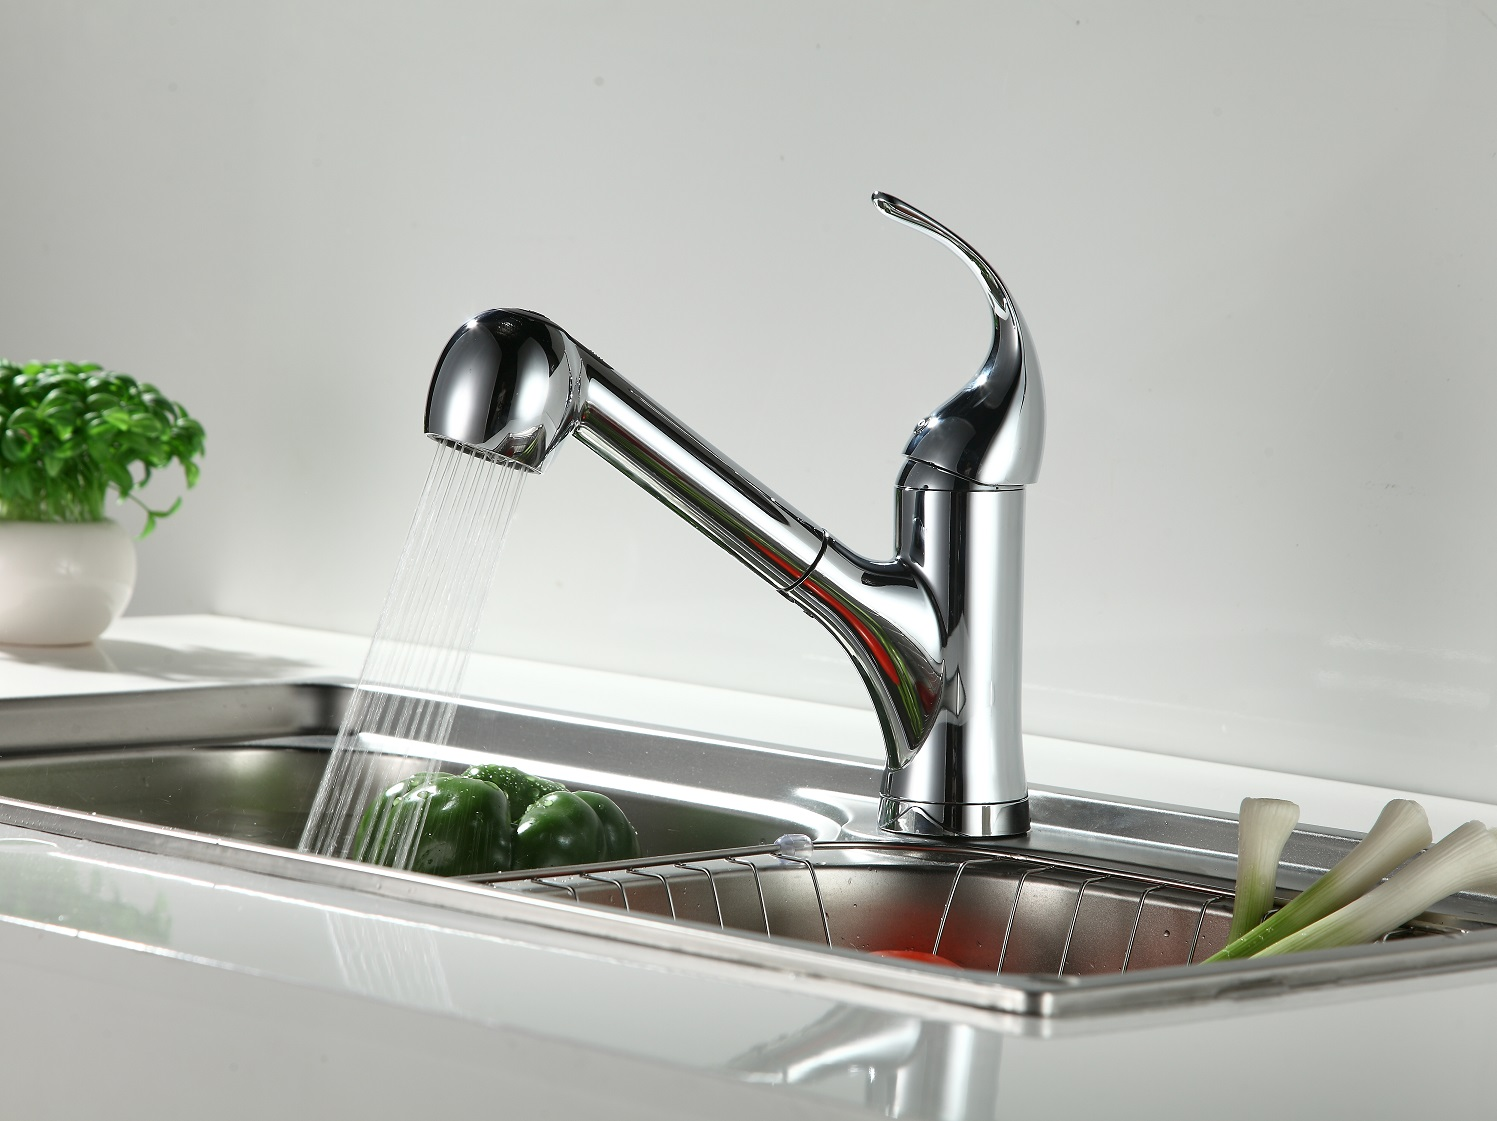 for shacos reviews kitchen providing and houses newly of s reputed this is lead sink another faucet most shaco nickel quality faucets one developed the free check